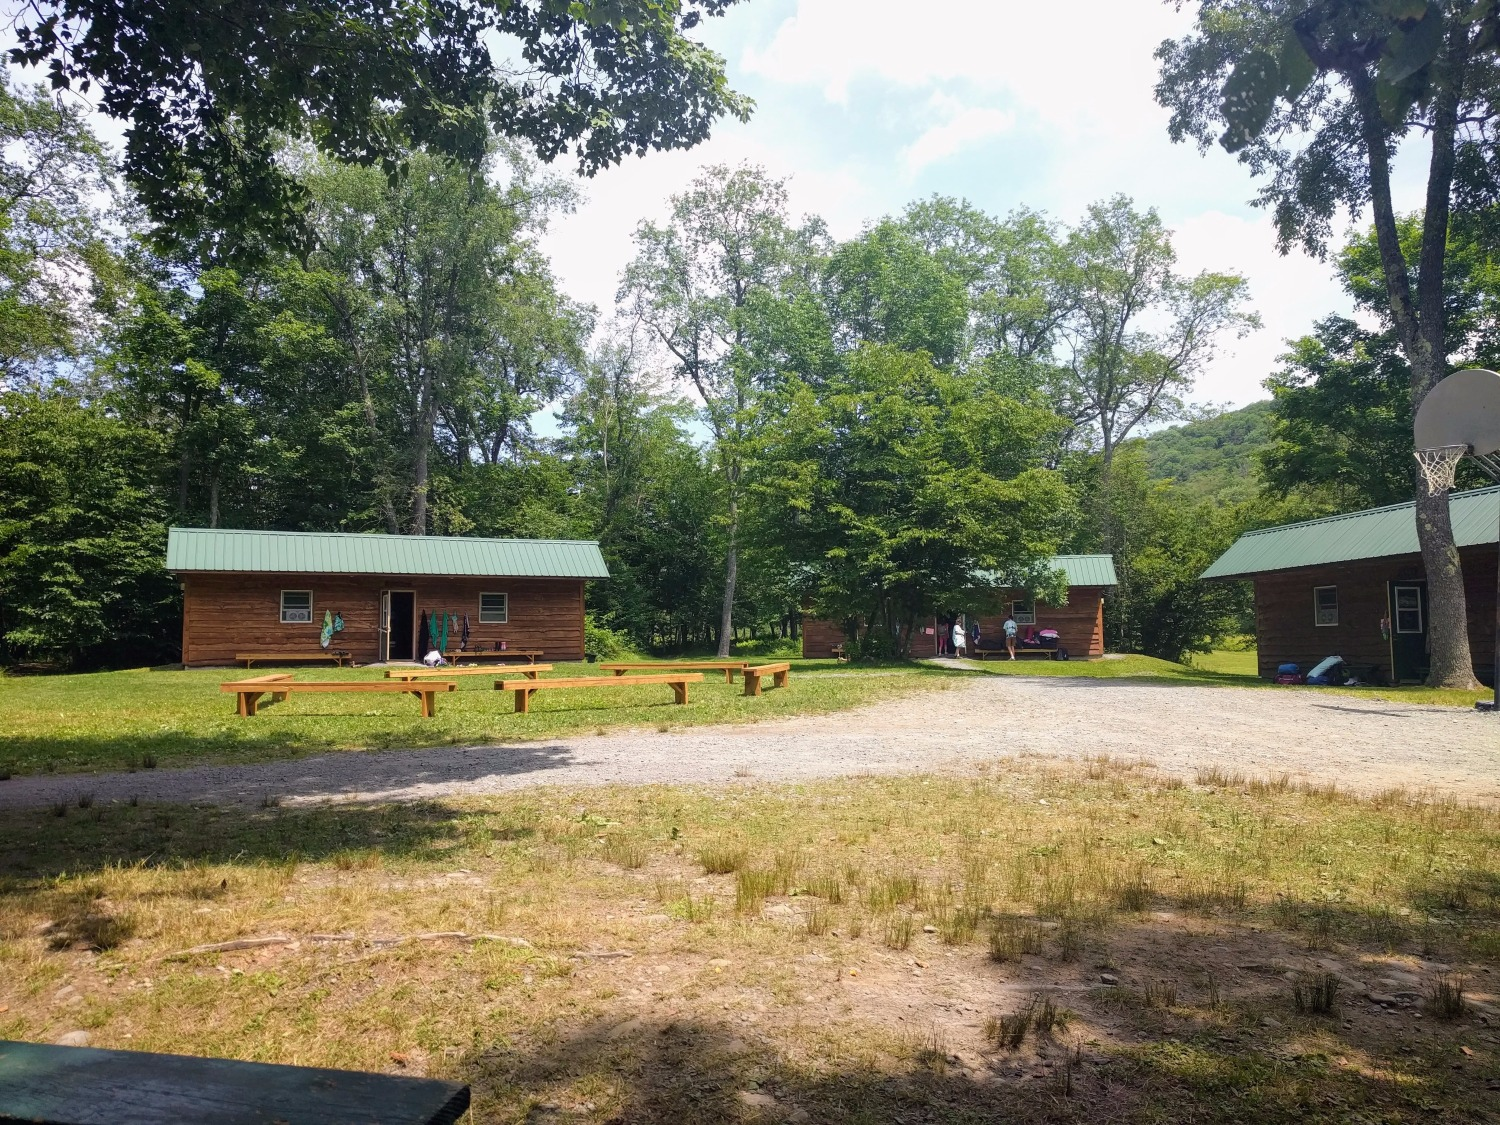 Several cabins at Camp DeBruce sit among the trees